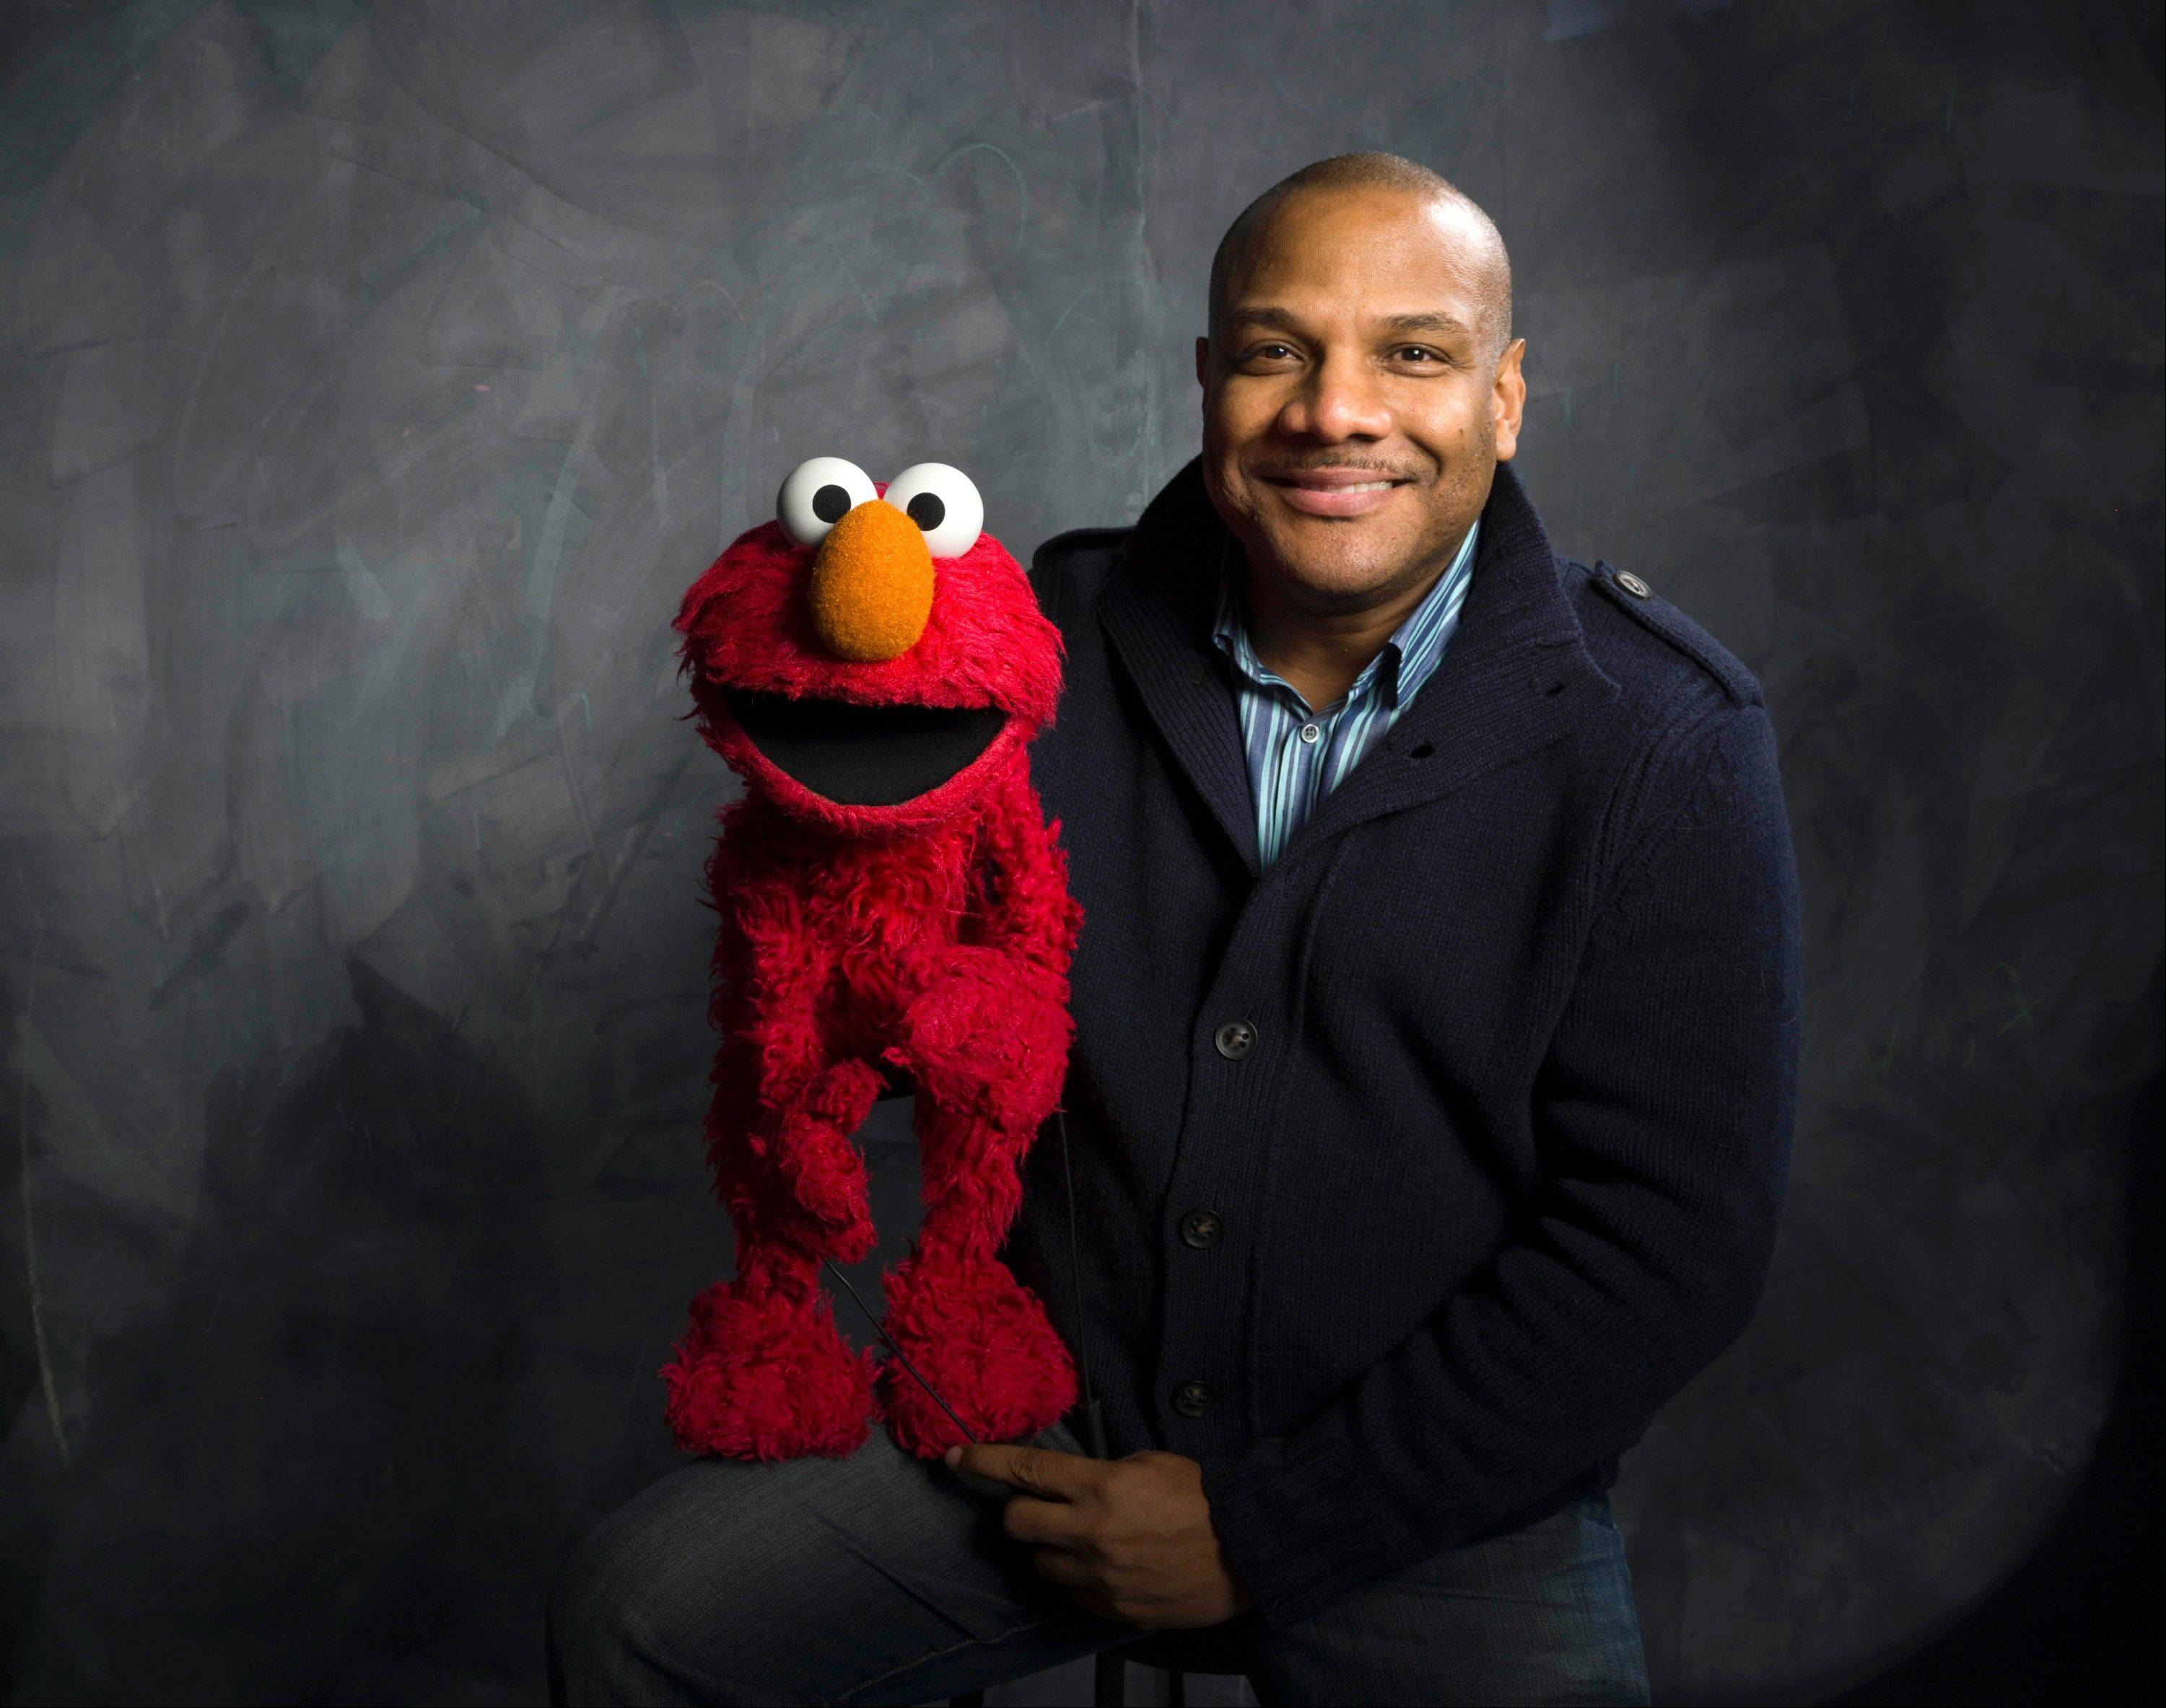 In a quick turnabout, a man who accused Elmo puppeteer Kevin Clash of having sex with him when he was a teenage boy now says they had a relationship as adults and it was consensual.